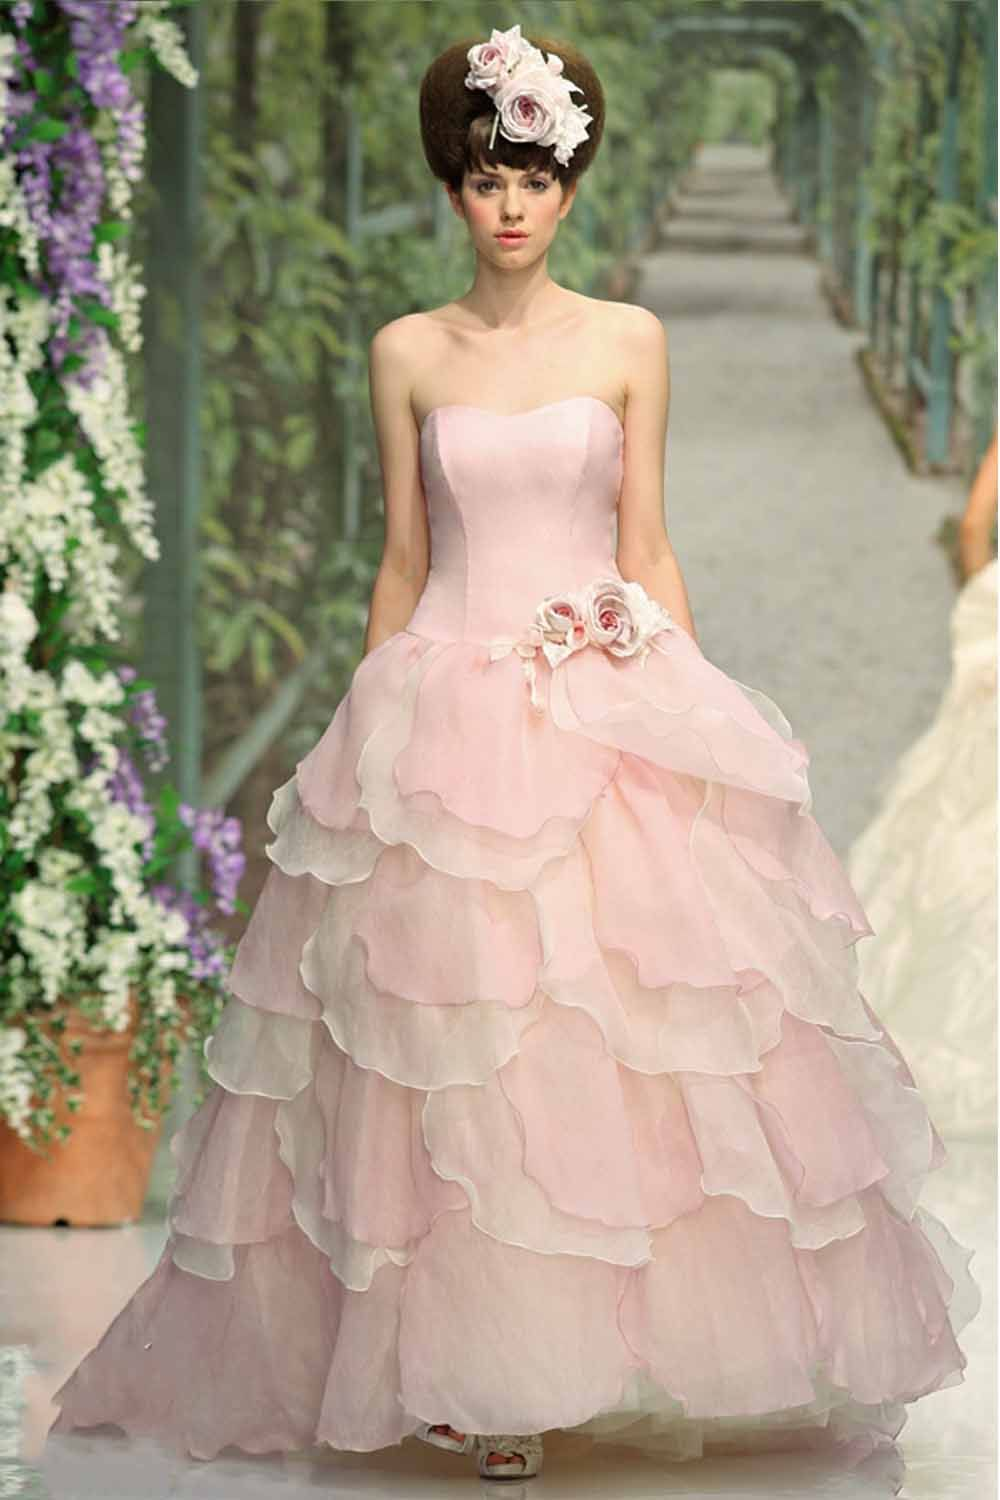 17 Best images about Pink Wedding dress on Pinterest | Pink gowns ...